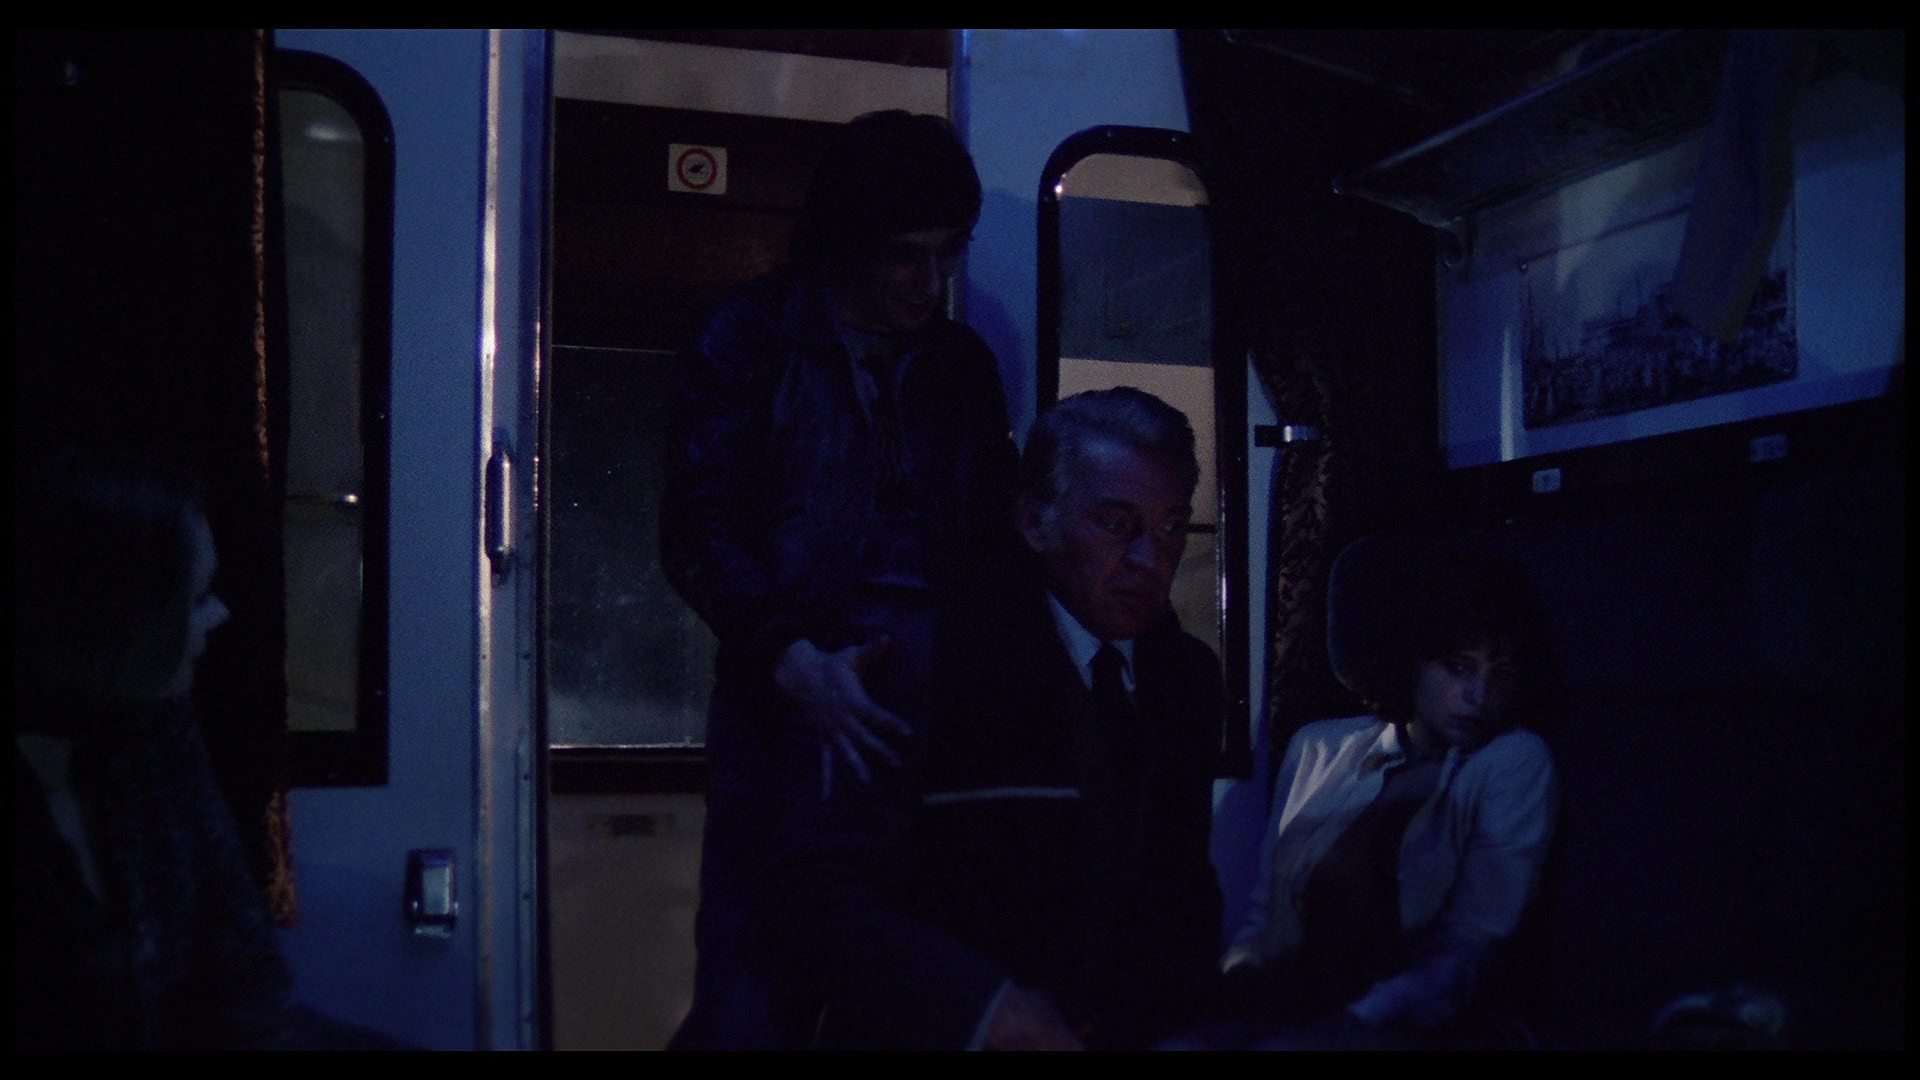 http://sinsofcinema.com/Images/Night%20Train%20Murders/Night%20Train%20Murders%20Blu-Ray.jpg